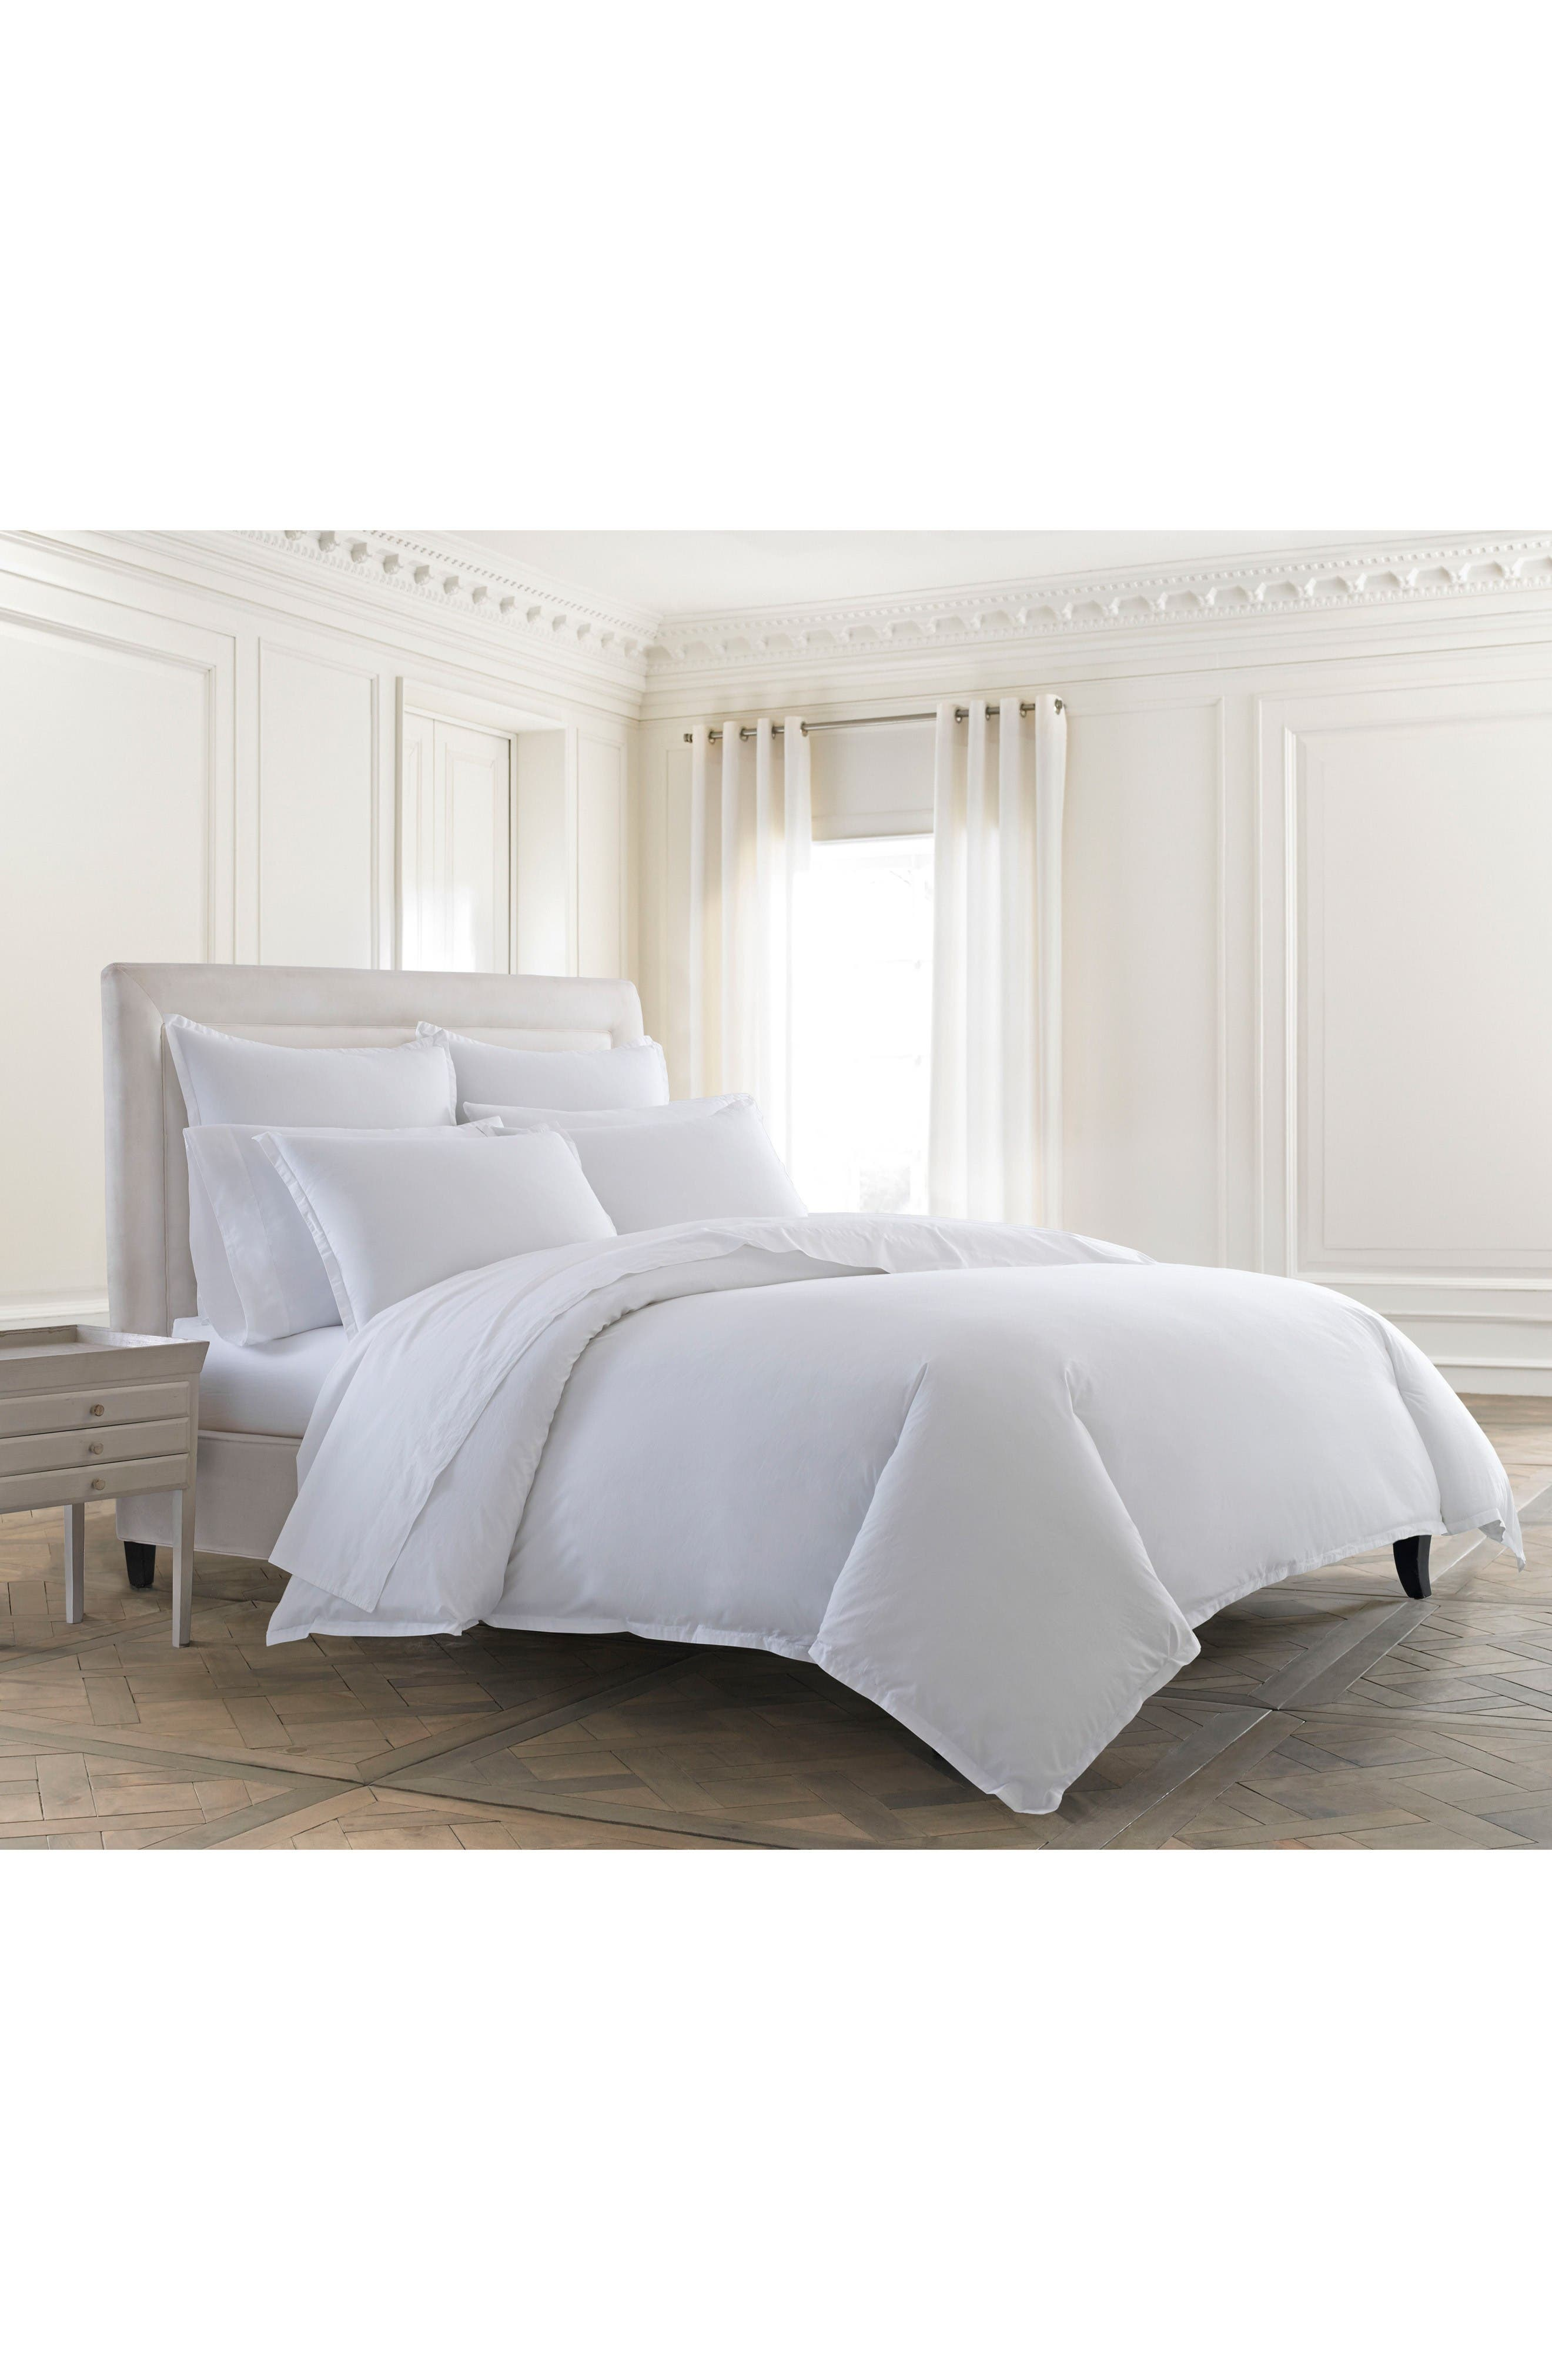 KASSATEX Lorimer 300 Thread Count Duvet Cover